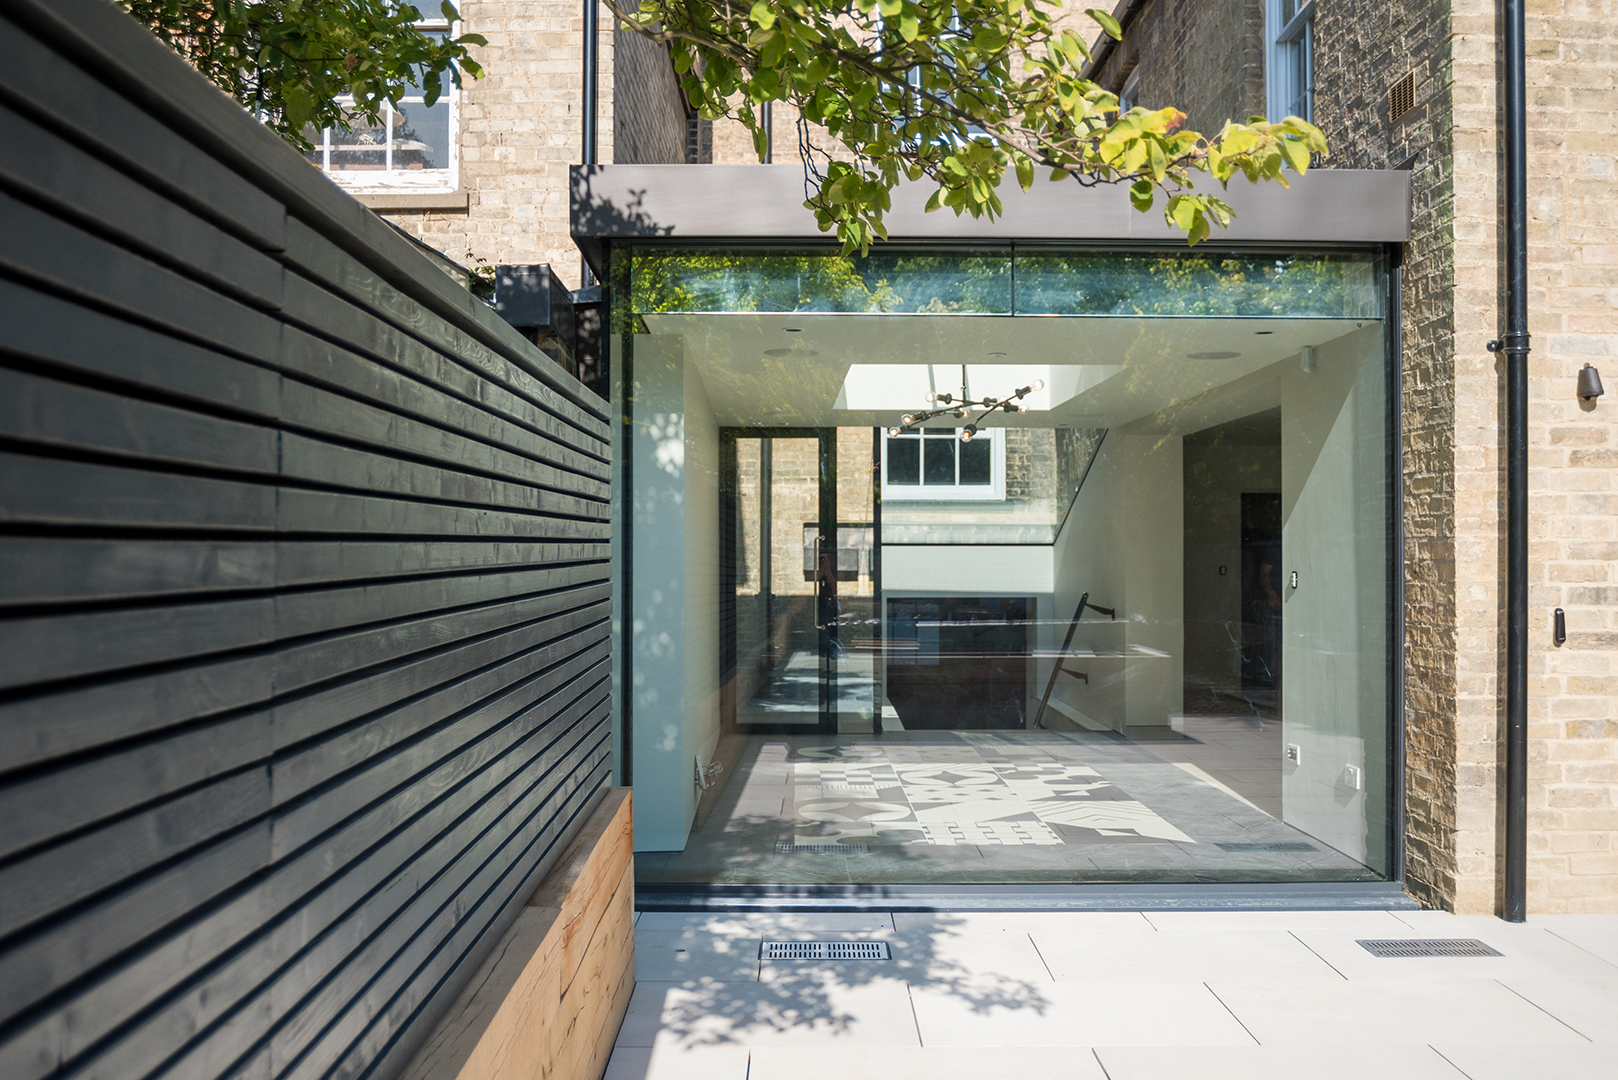 Listed Building Extension | Glass extension | Contemporary Extension | Chevron Parquet | Architect | Building Contractor | Design and Build | Construction | Interior Design | Building | Refurbishment | Cambridge | London | Suffolk | Essex | Saffron Walden | Hertfordshire | The Daniels Group